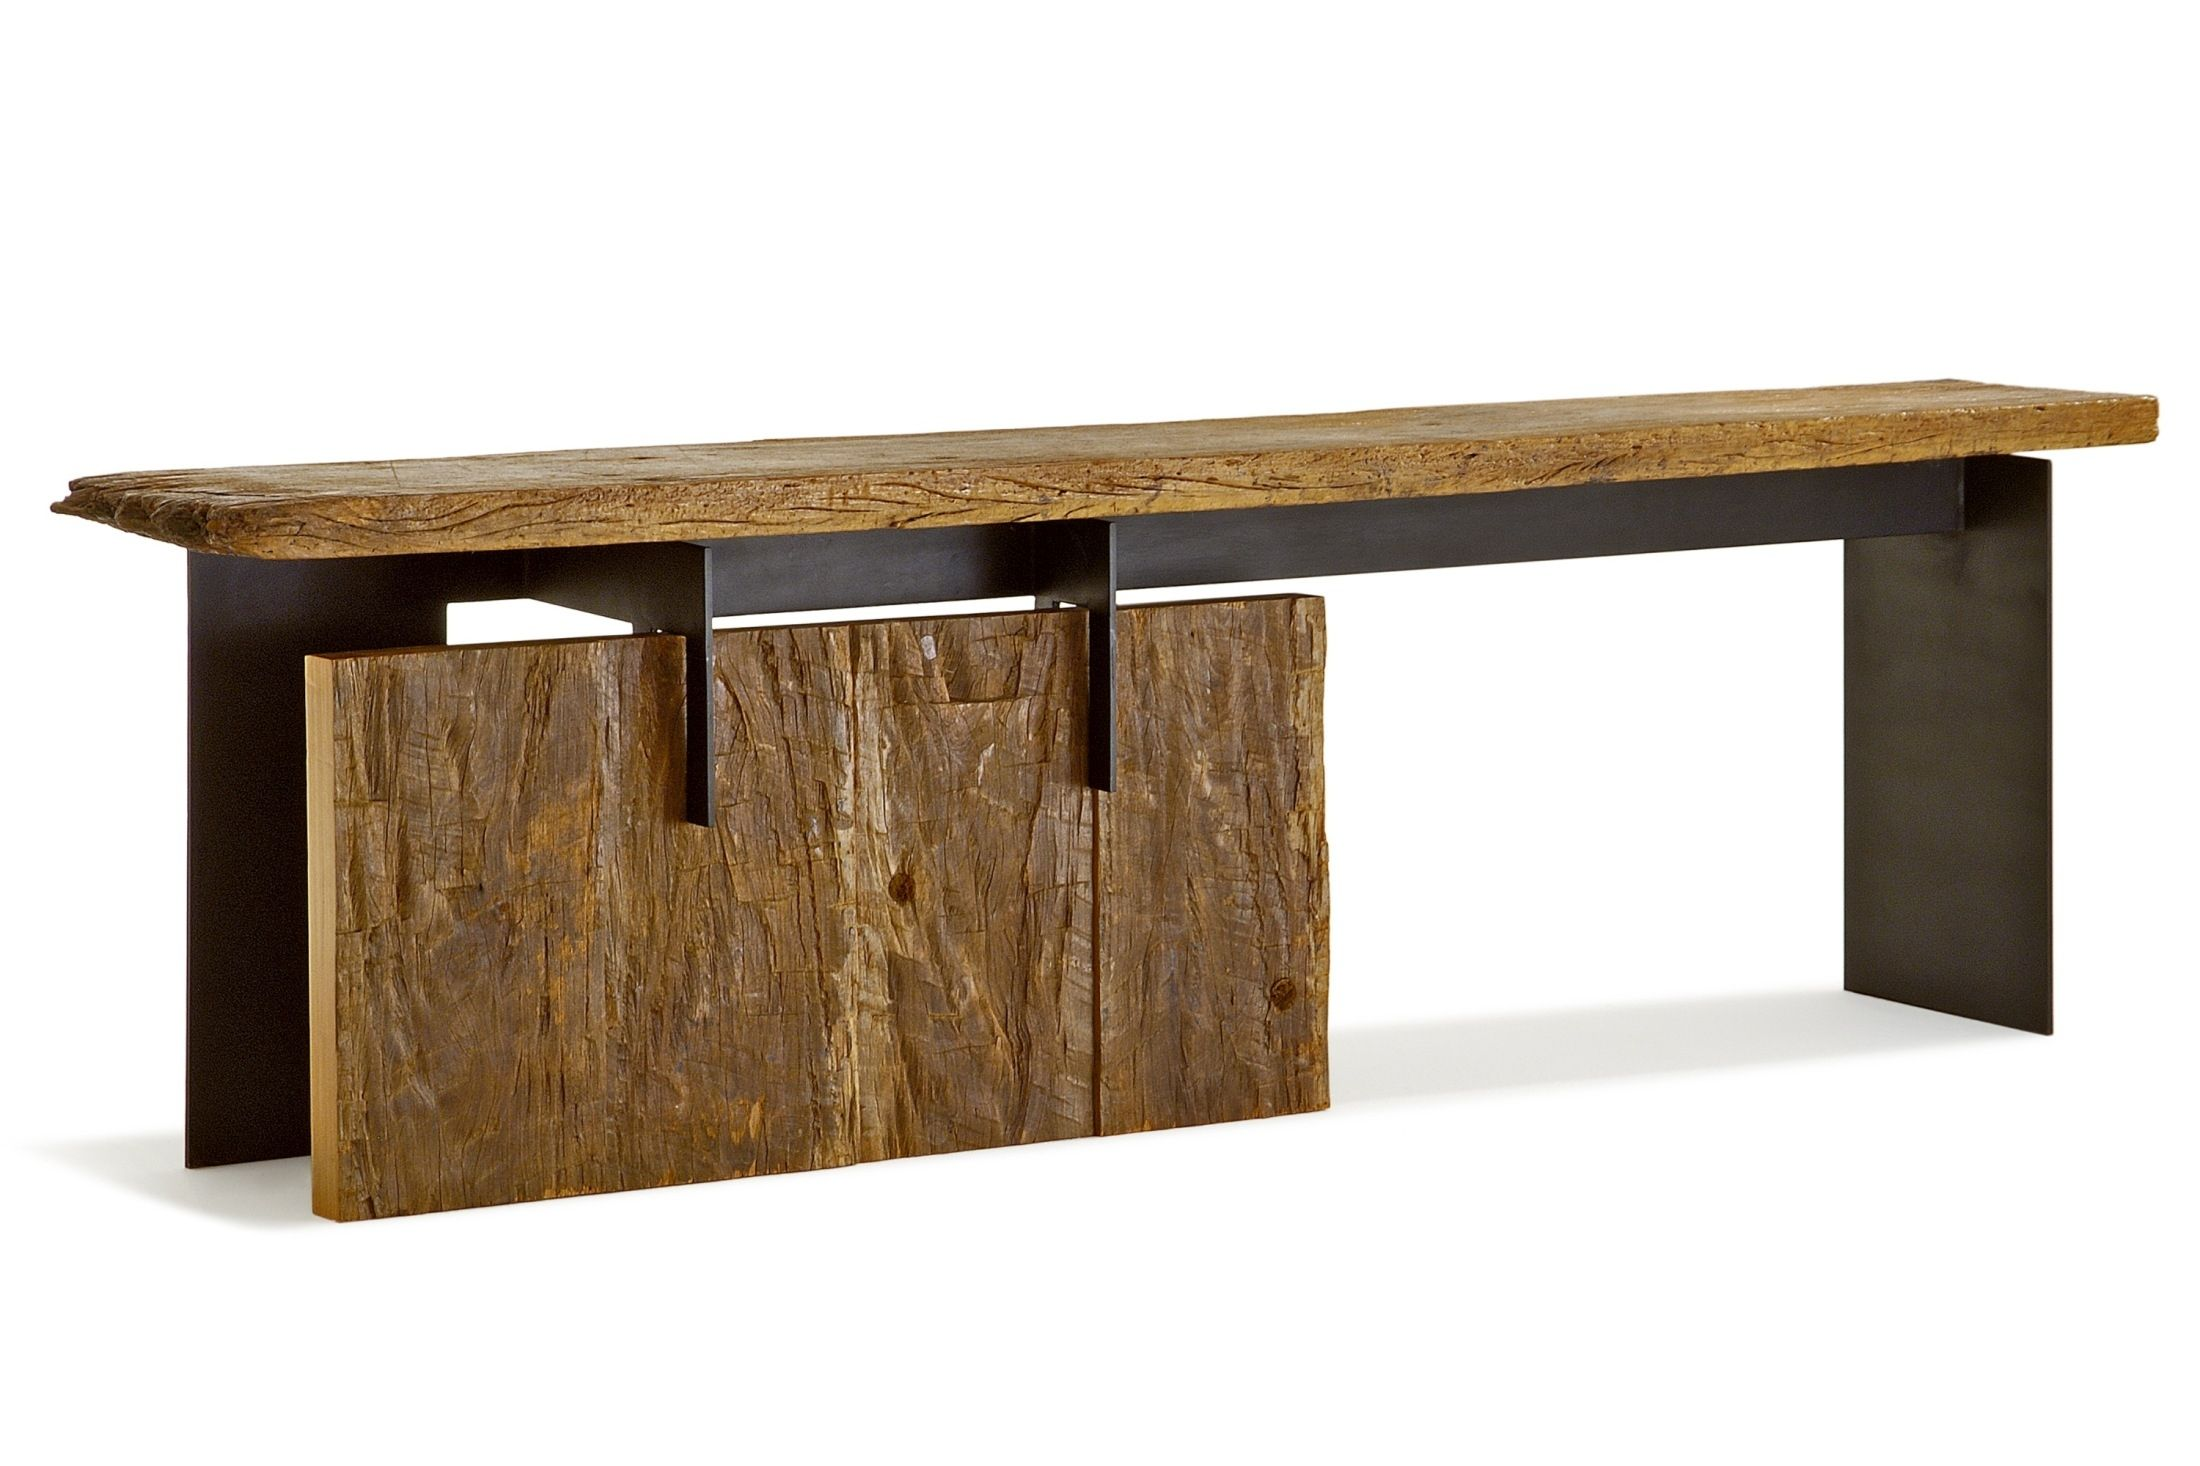 sideboard table contemporary wooden rectangular chapa wooden sideboard furniture